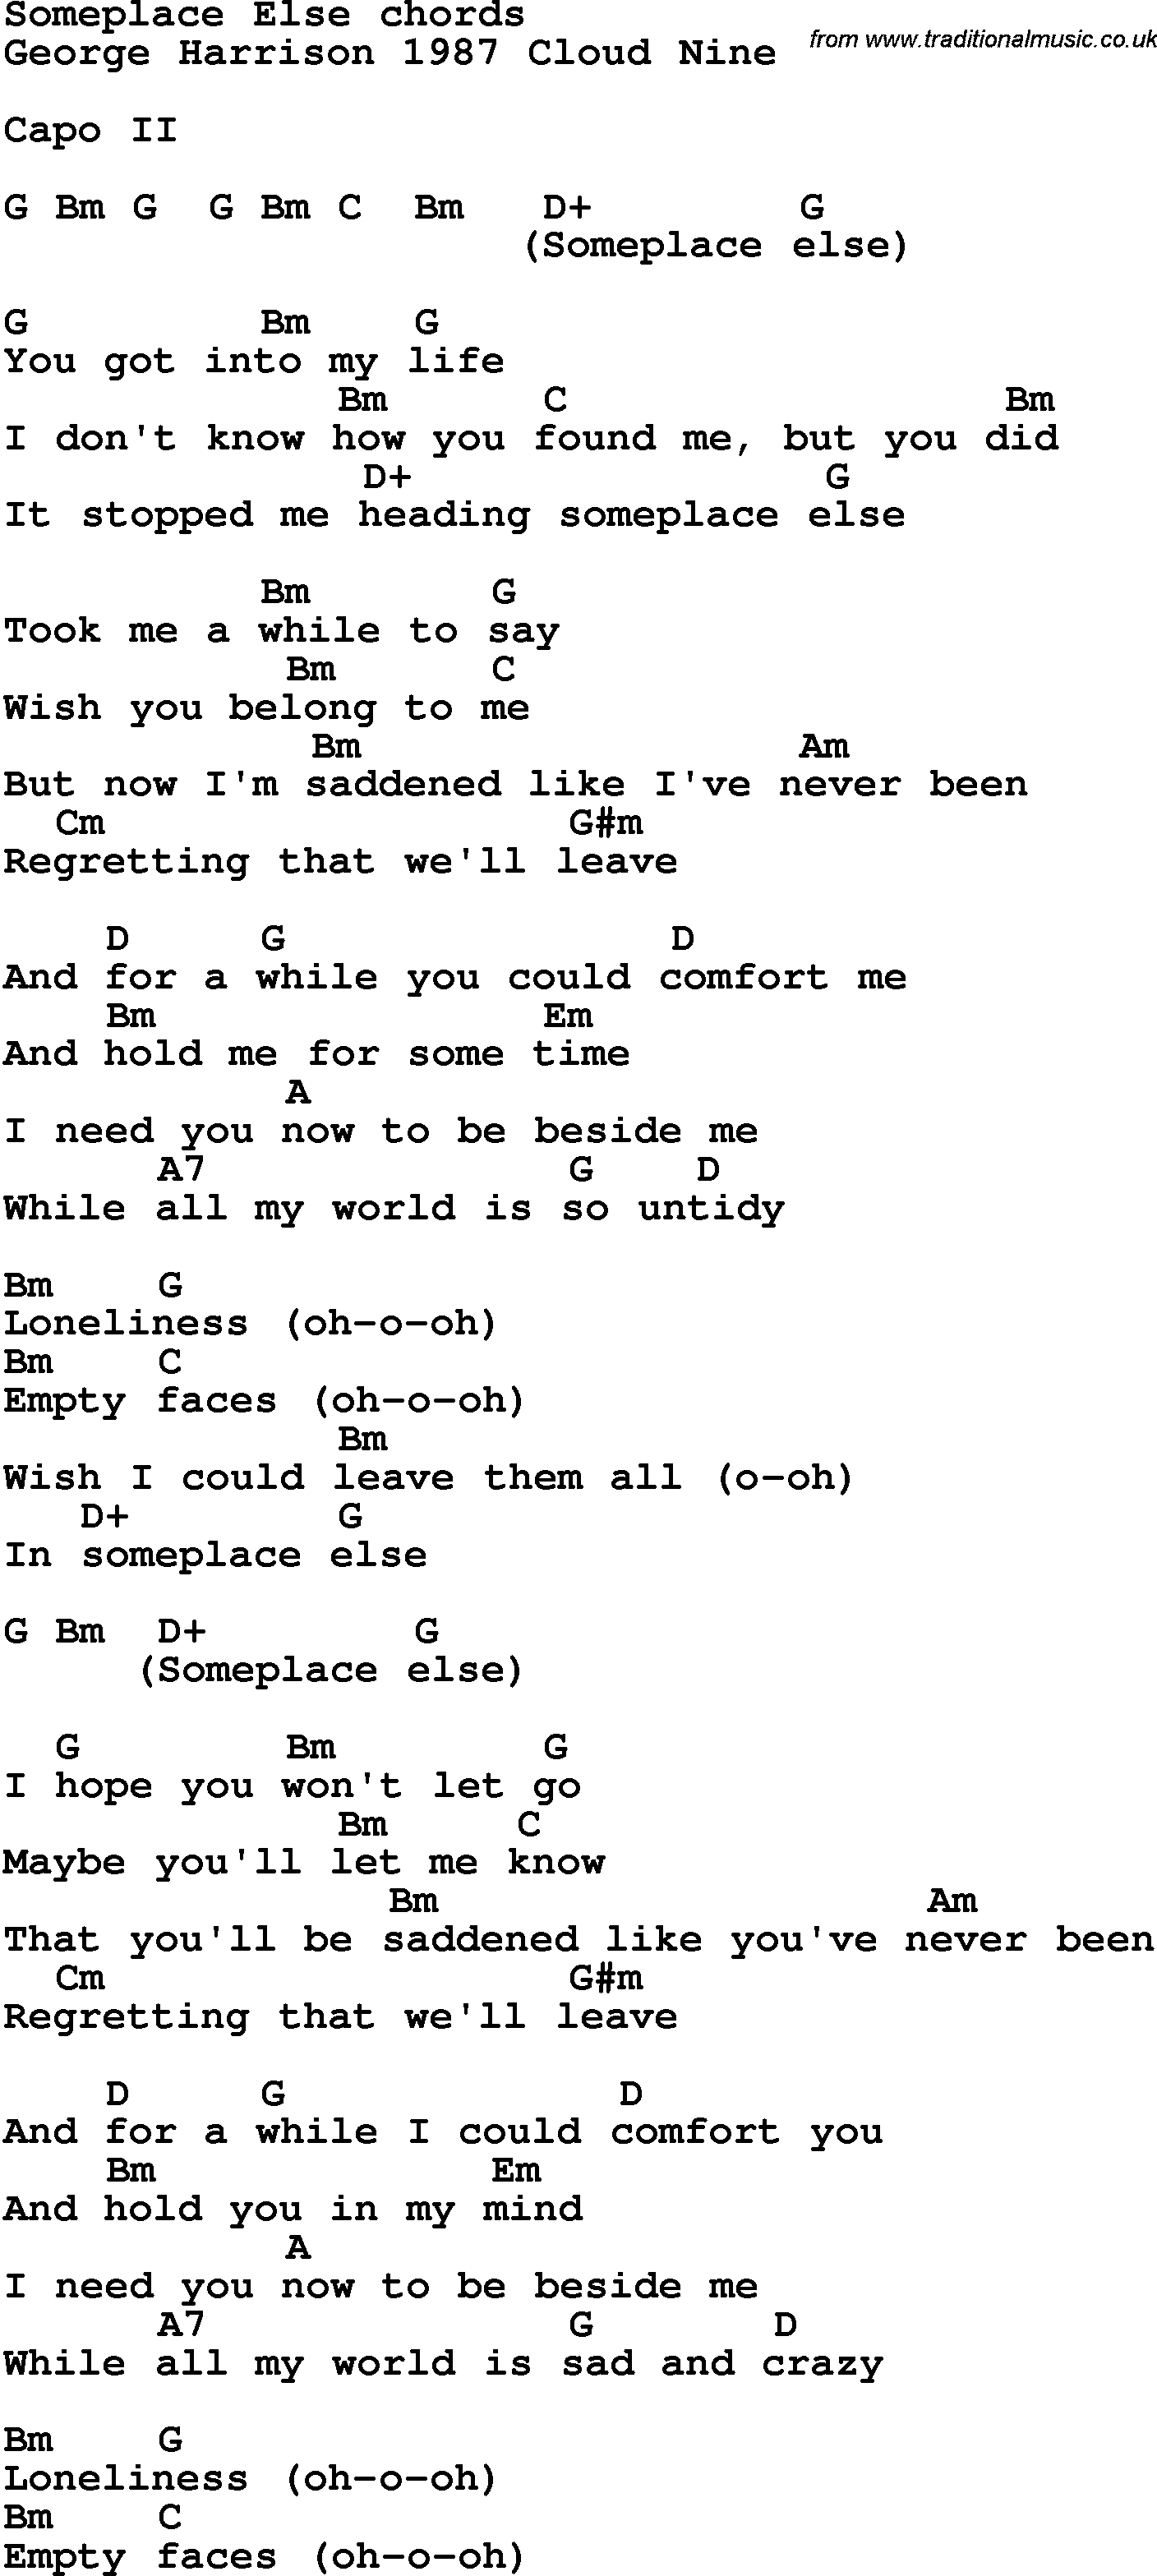 Lion And The Lamb Chords Song Lyrics With Guitar Chords For Someplace Else